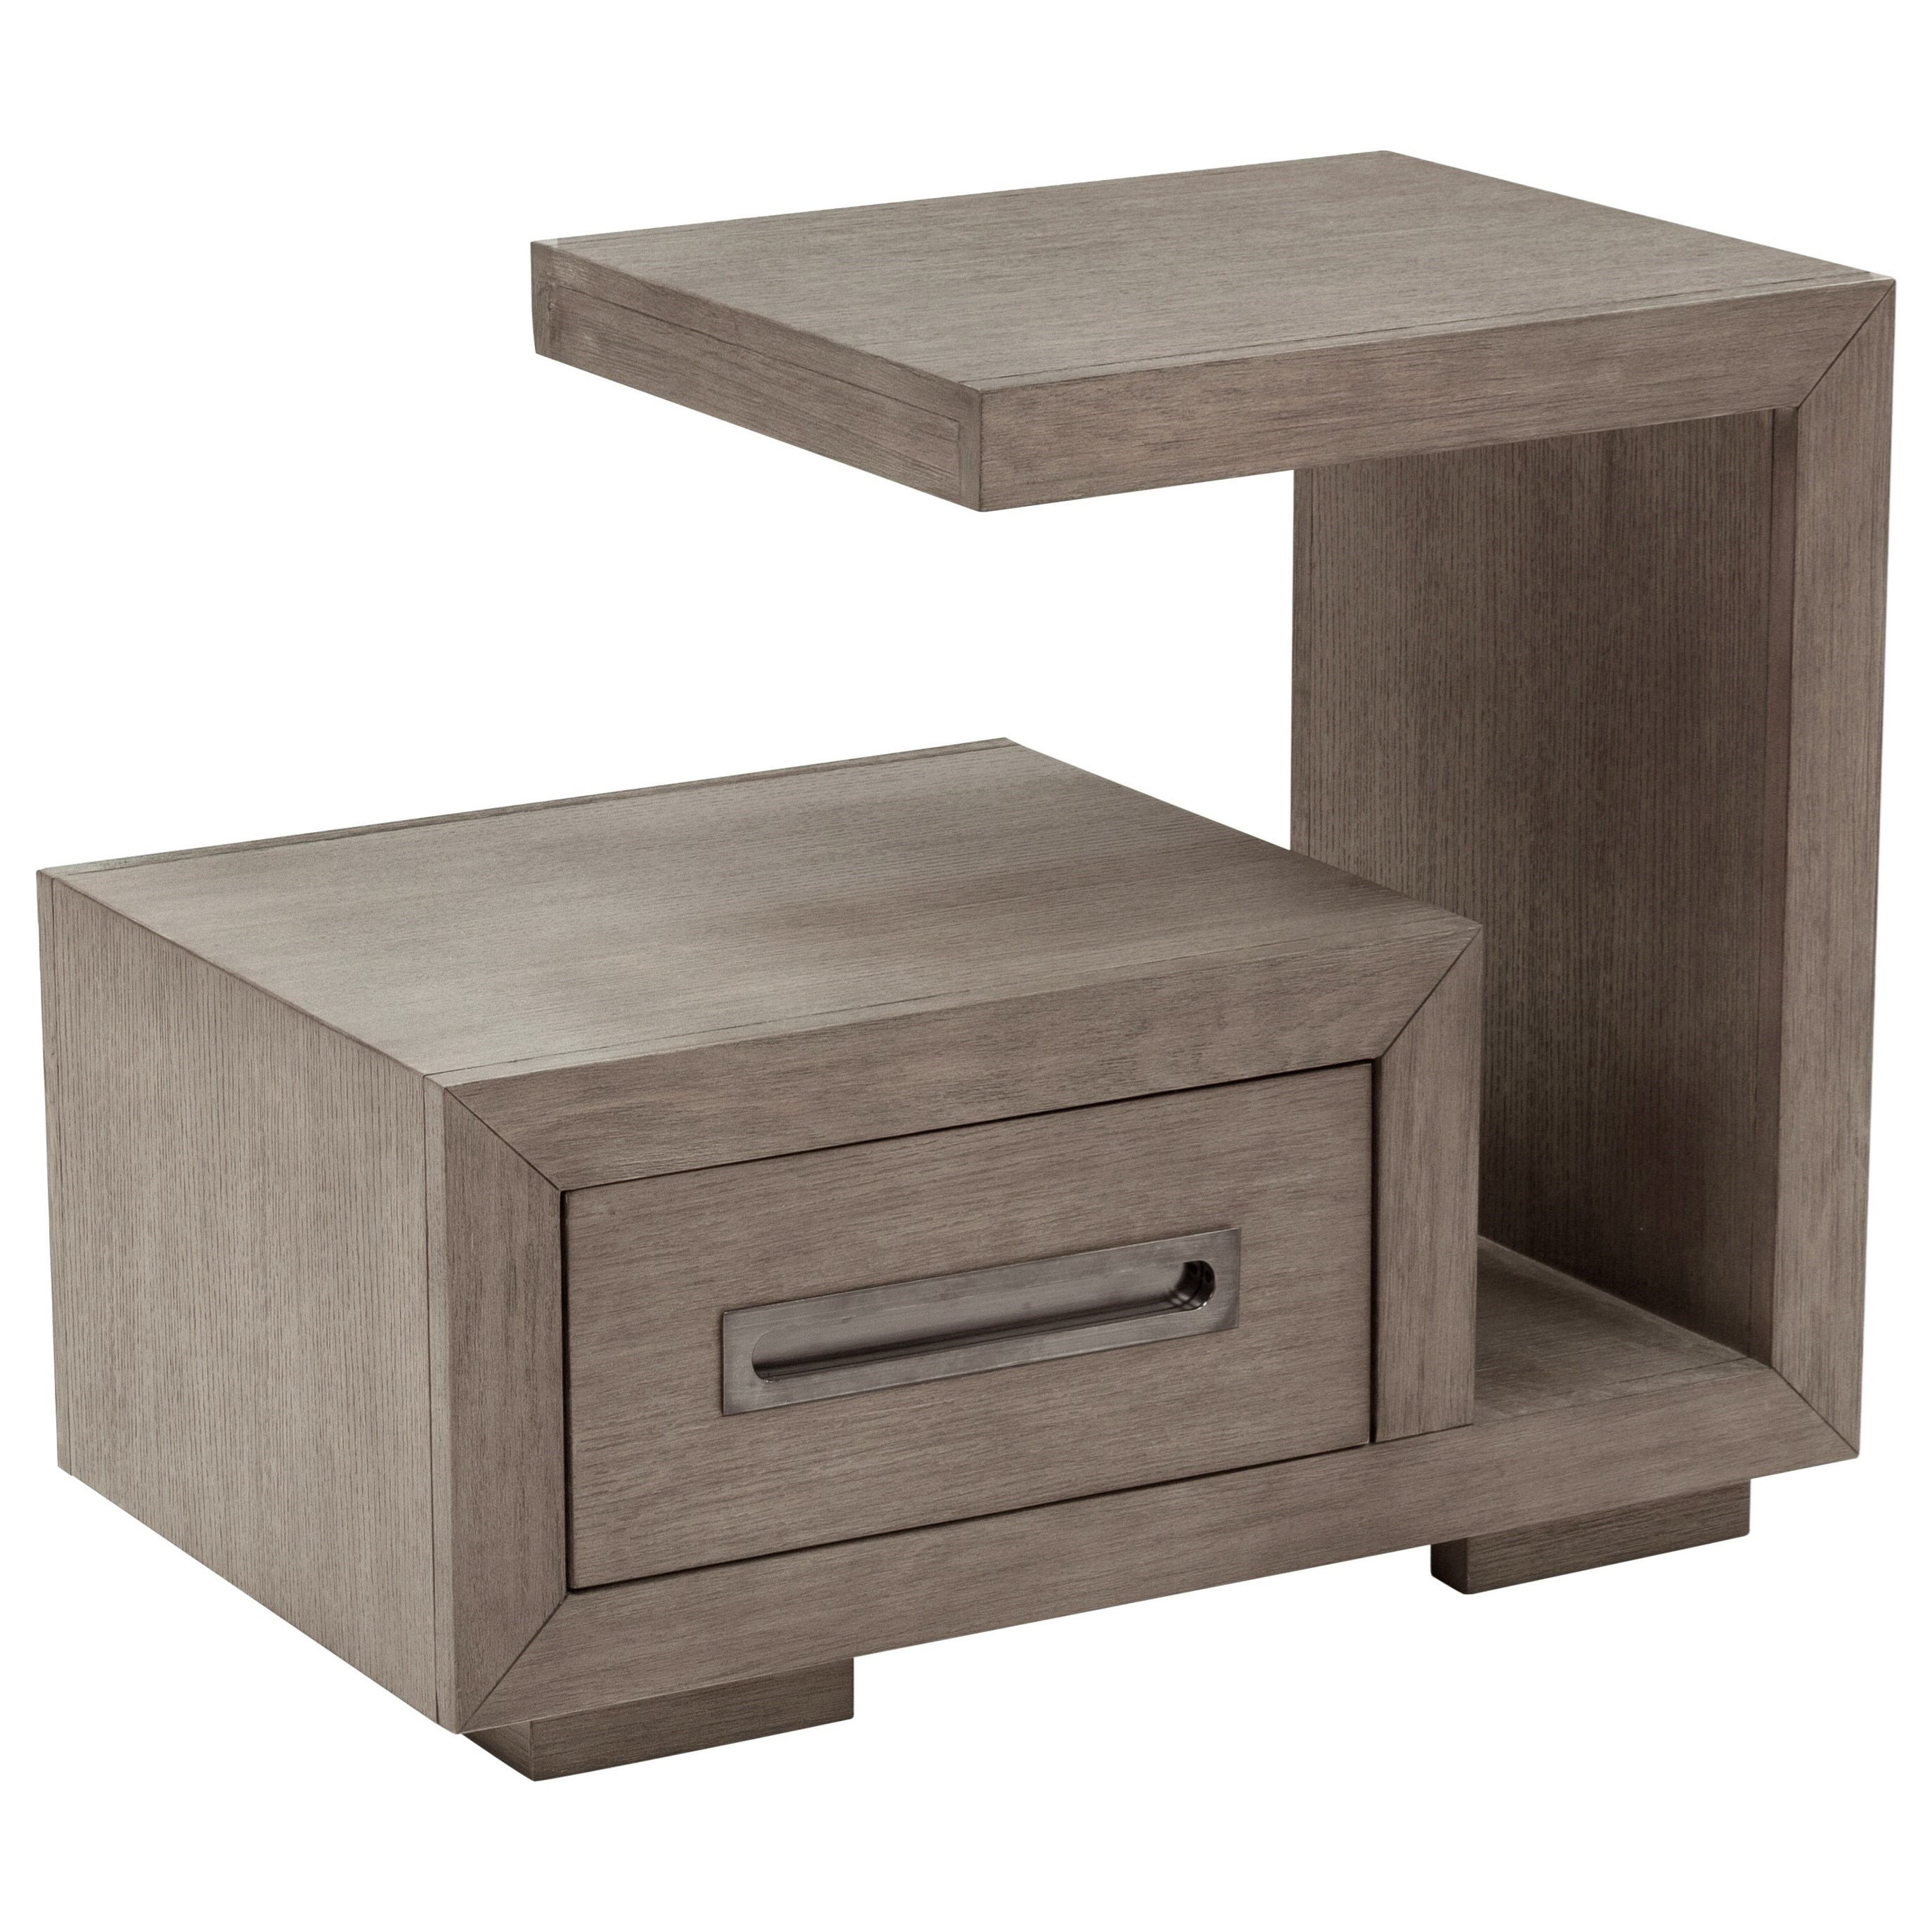 Accentrics Home Trumodern Contemporary 1 Drawer 3 Shelf Nightstand Lindy S Furniture Company Nightstands